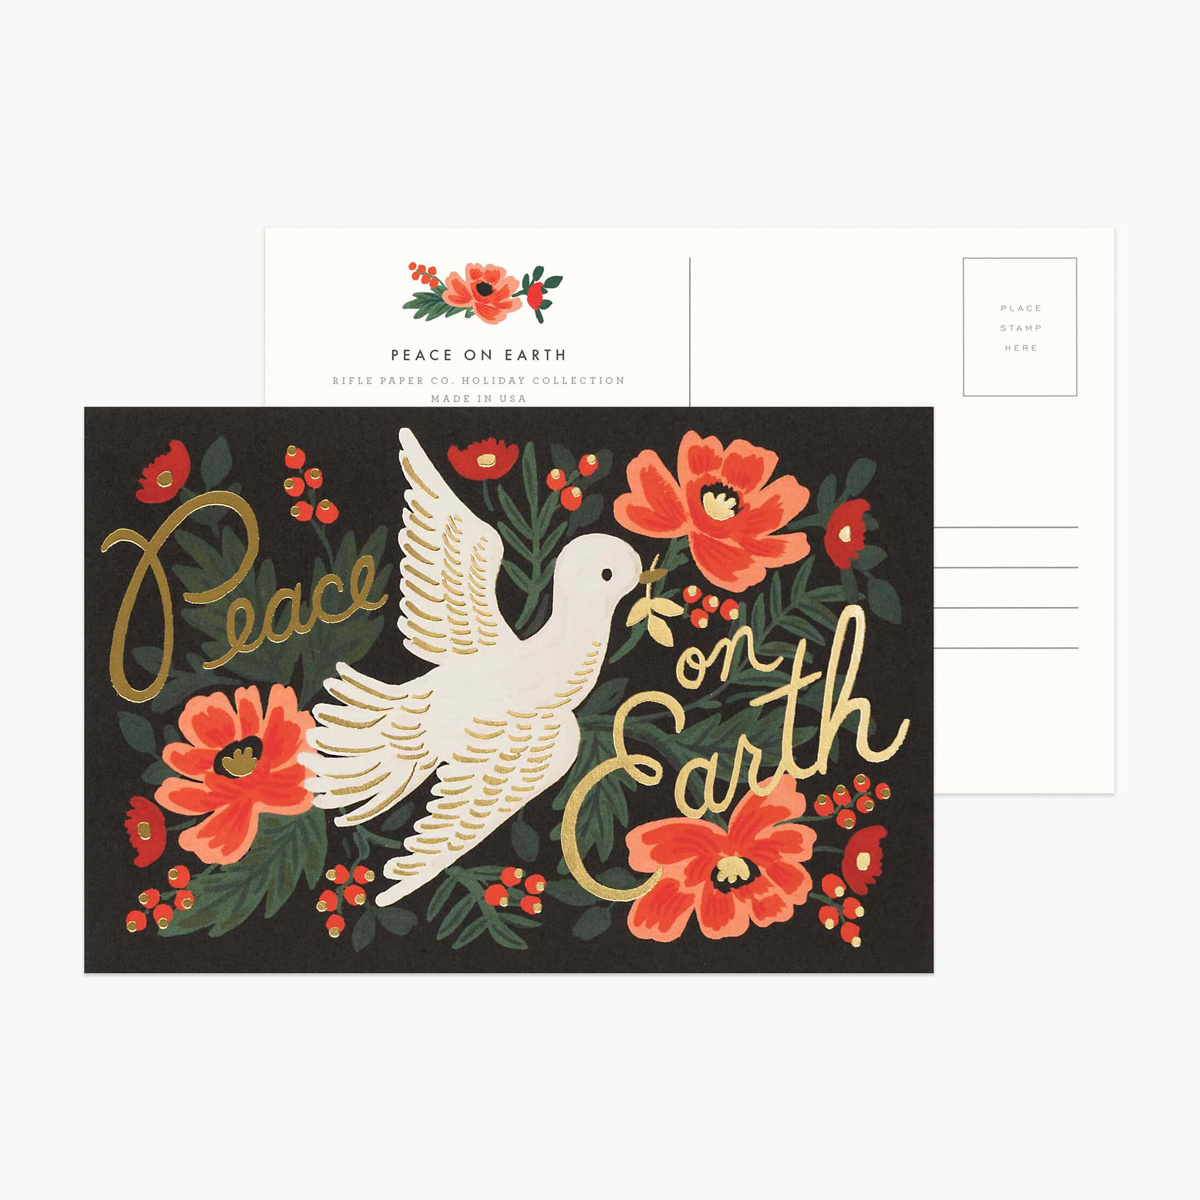 Rifle Paper Co - RP Rifle Paper - Peace on Earth Postcards, Set of 10